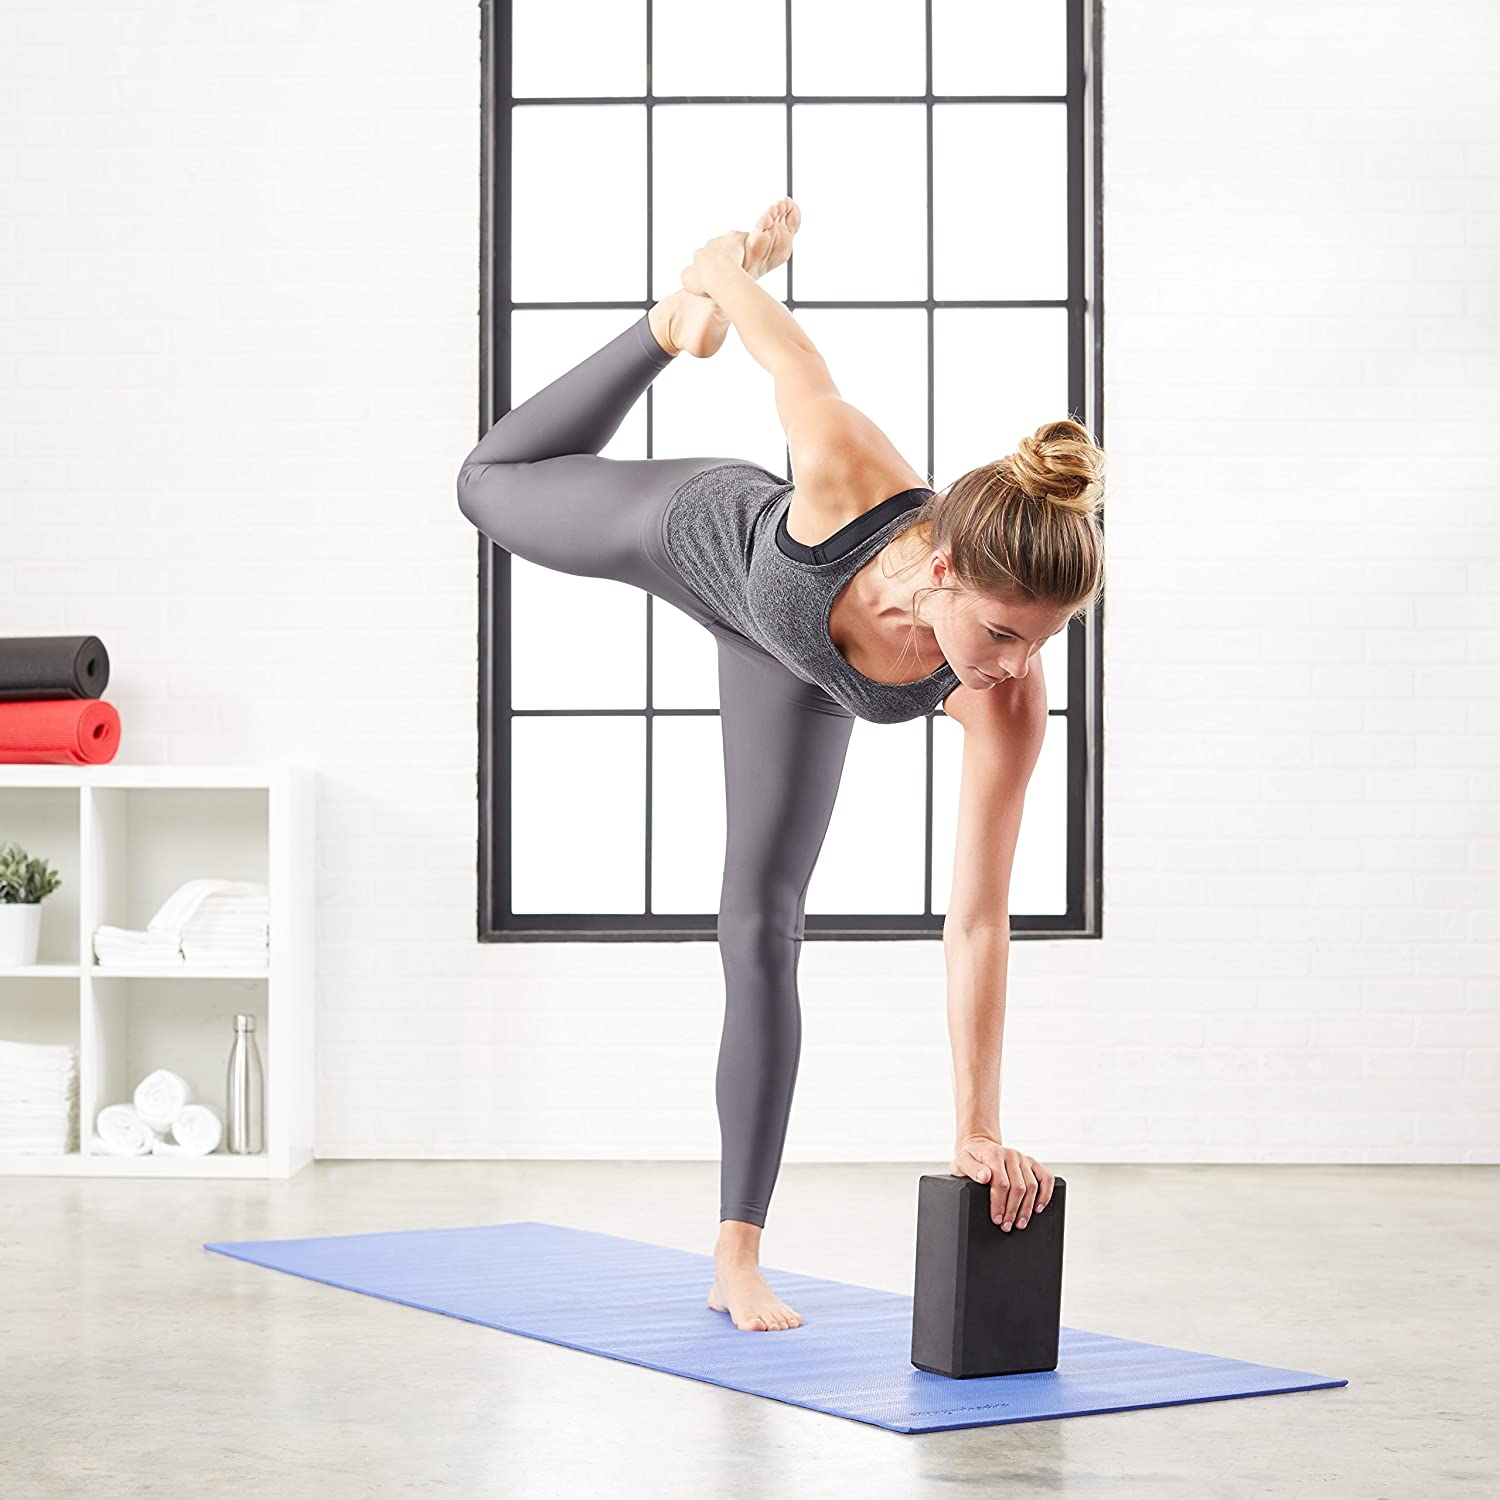 Amazon.com: Bloques de yoga AmazonBasics, juego de 2: Sports ...